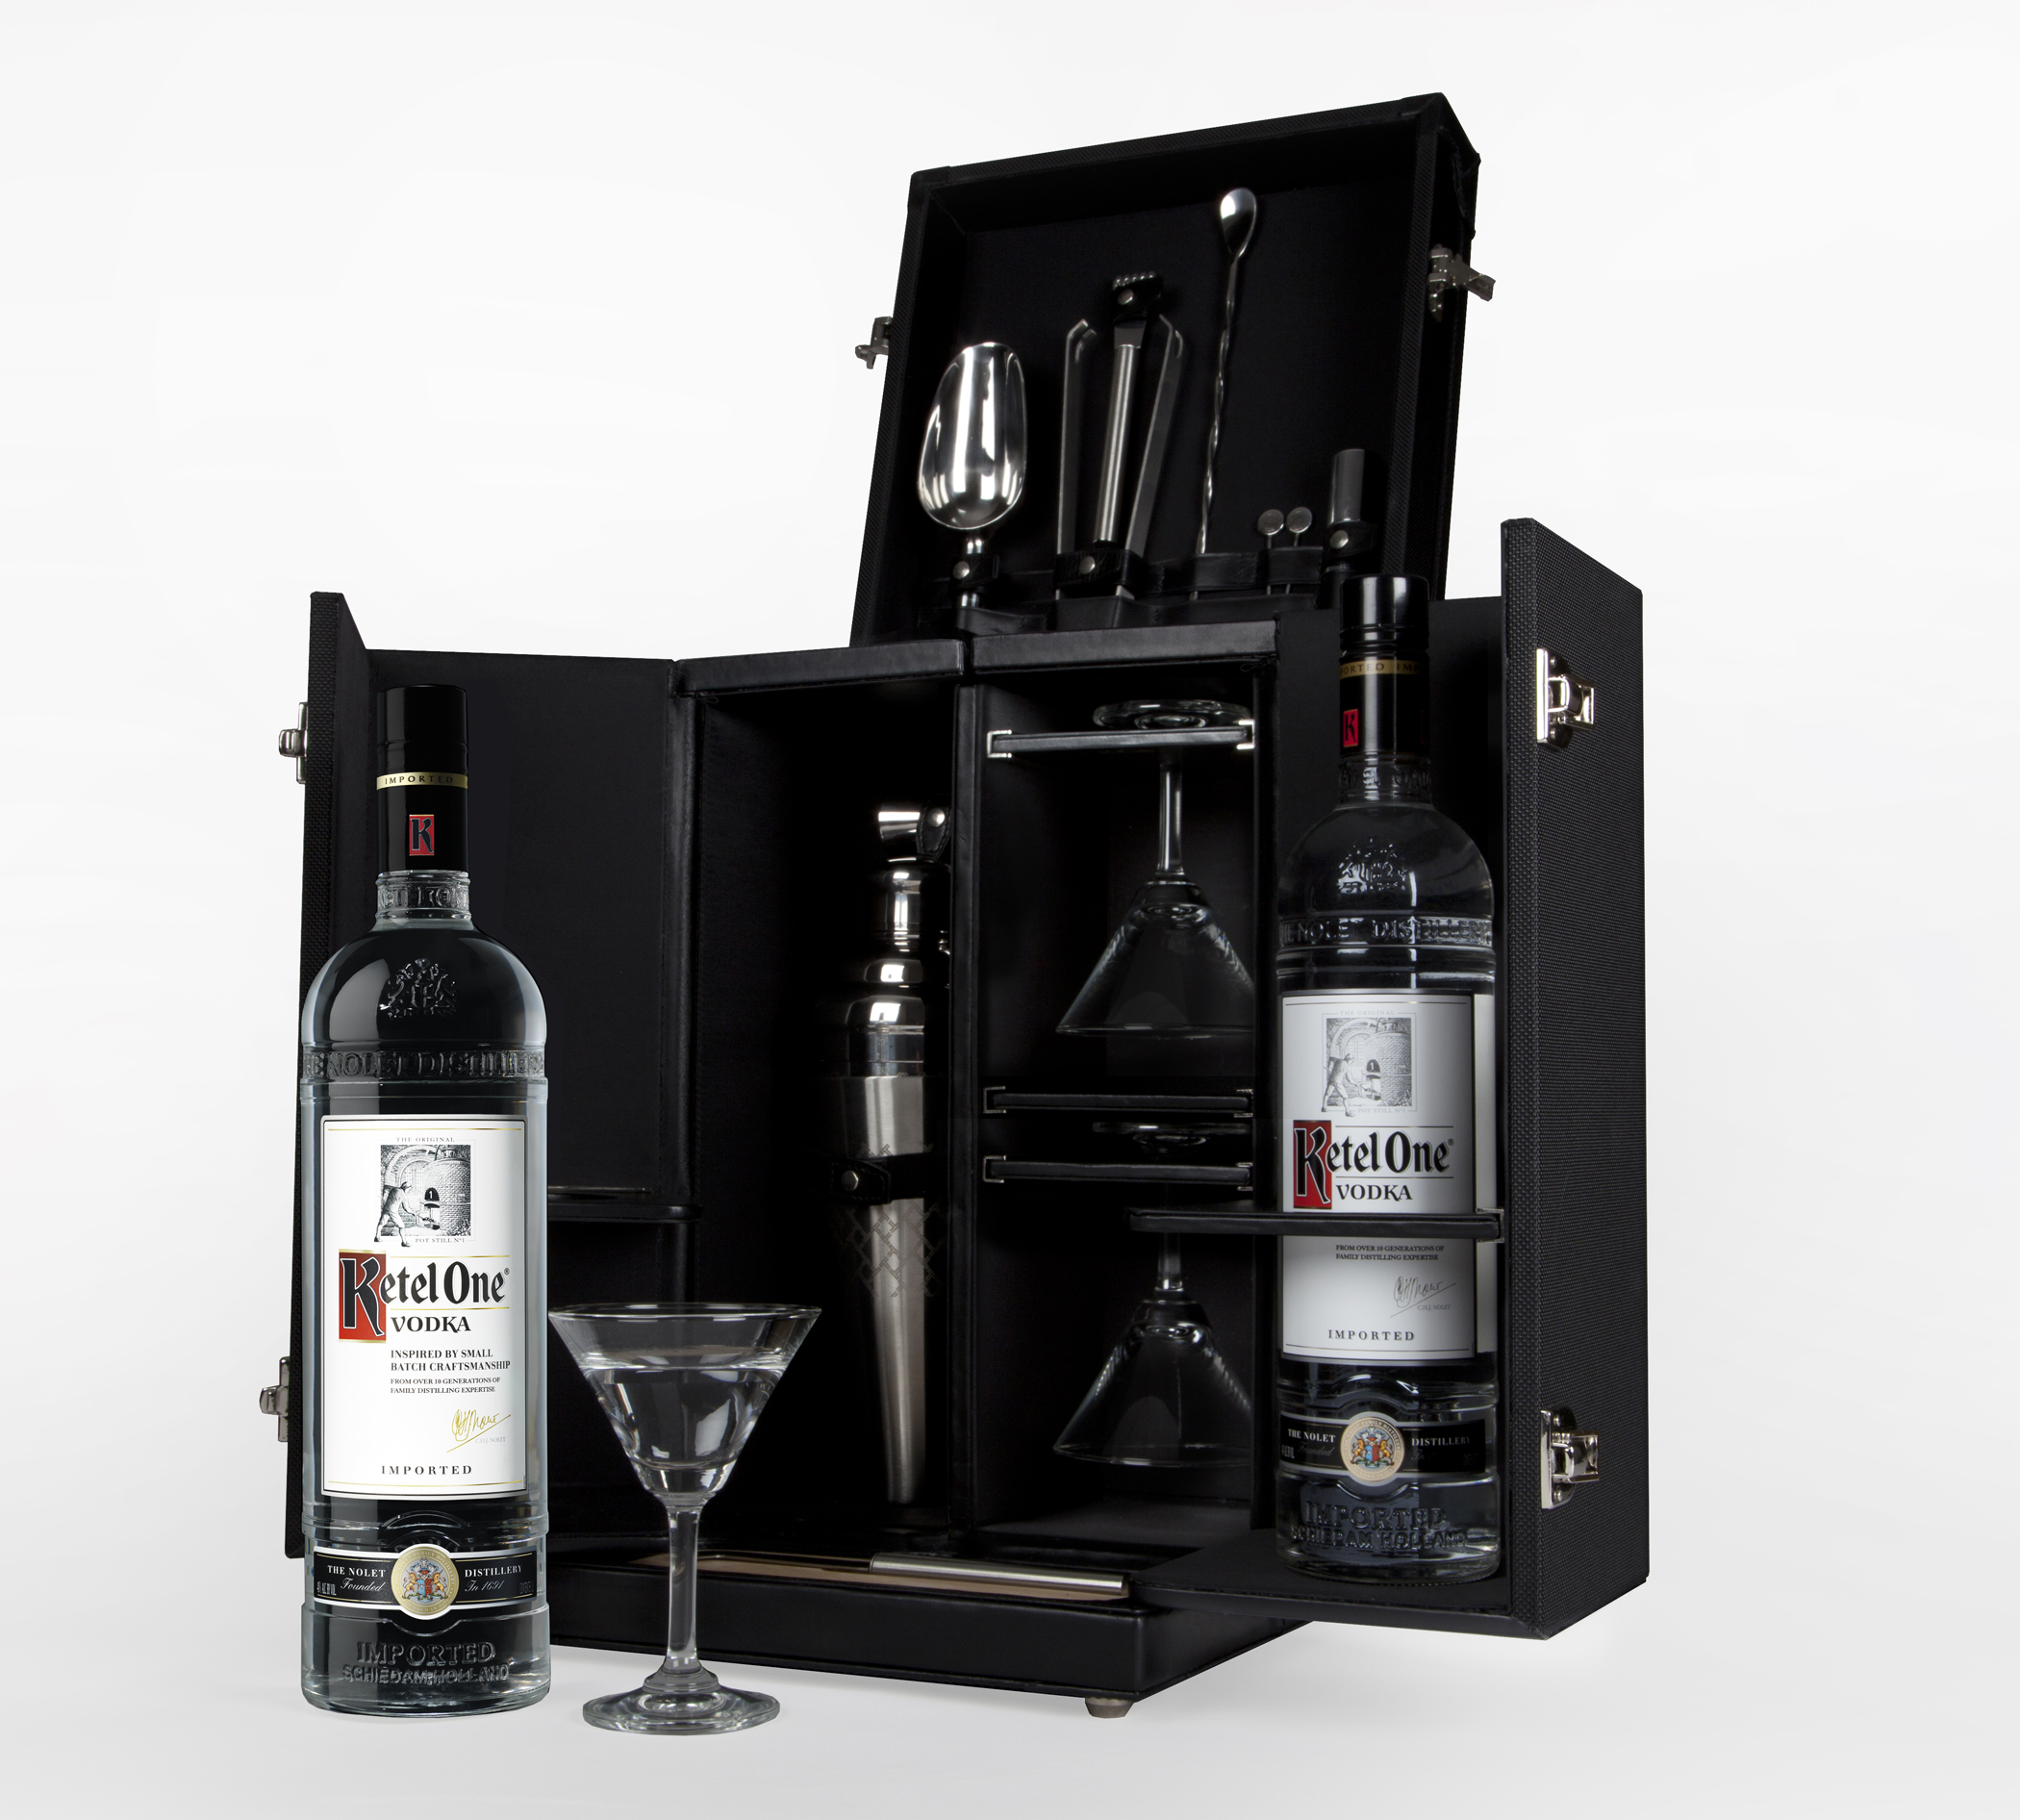 Tumi And Ketel One 174 Vodka Debut The Tumi Mixology Set